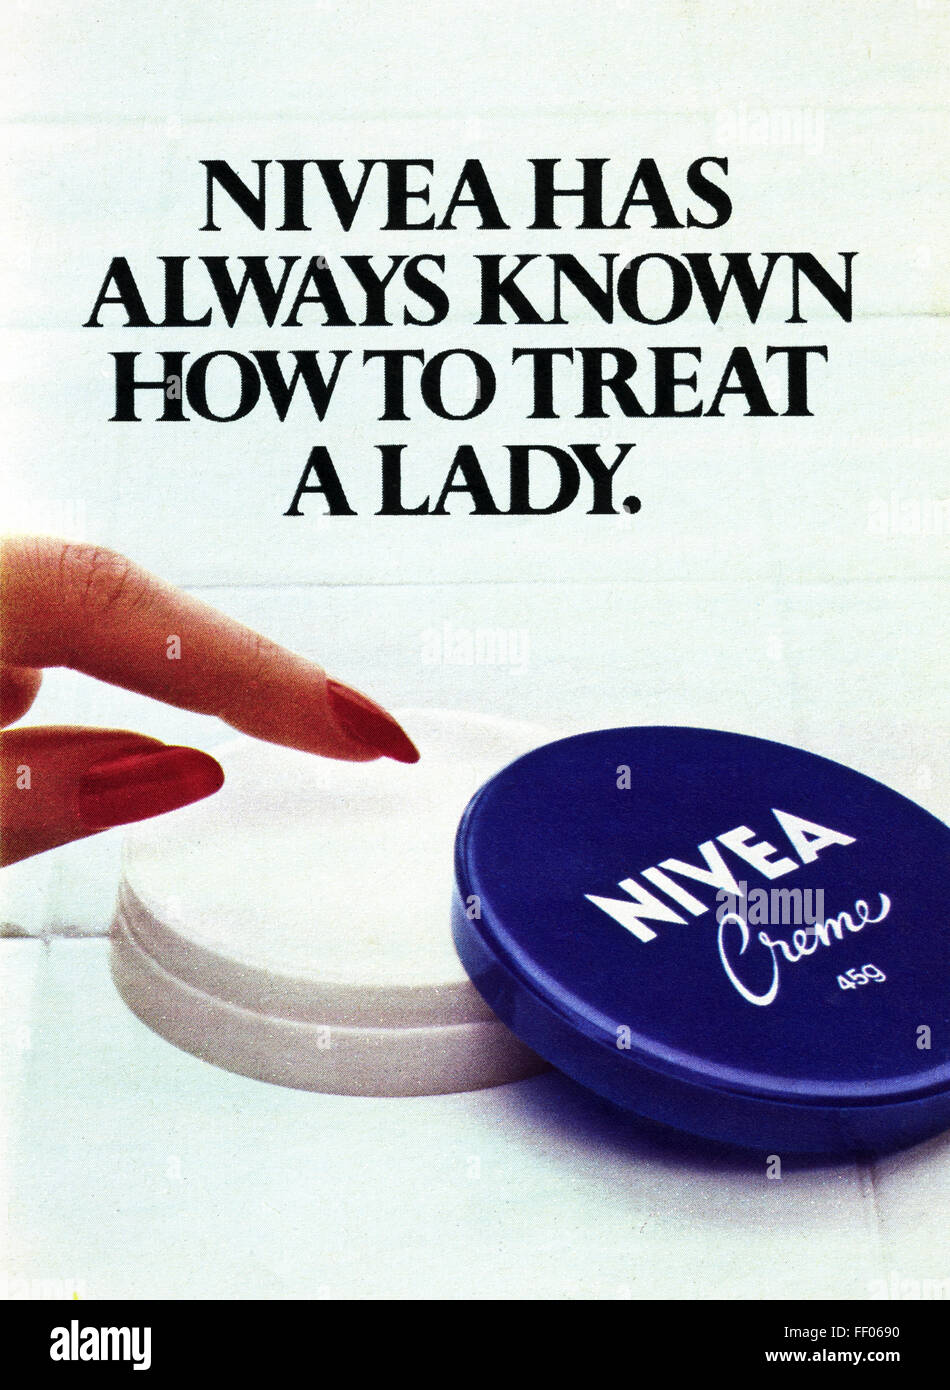 Original full page colour vintage advert from 1970s. Advertisement dated 1978 advertising Nivea hand cream - Stock Image